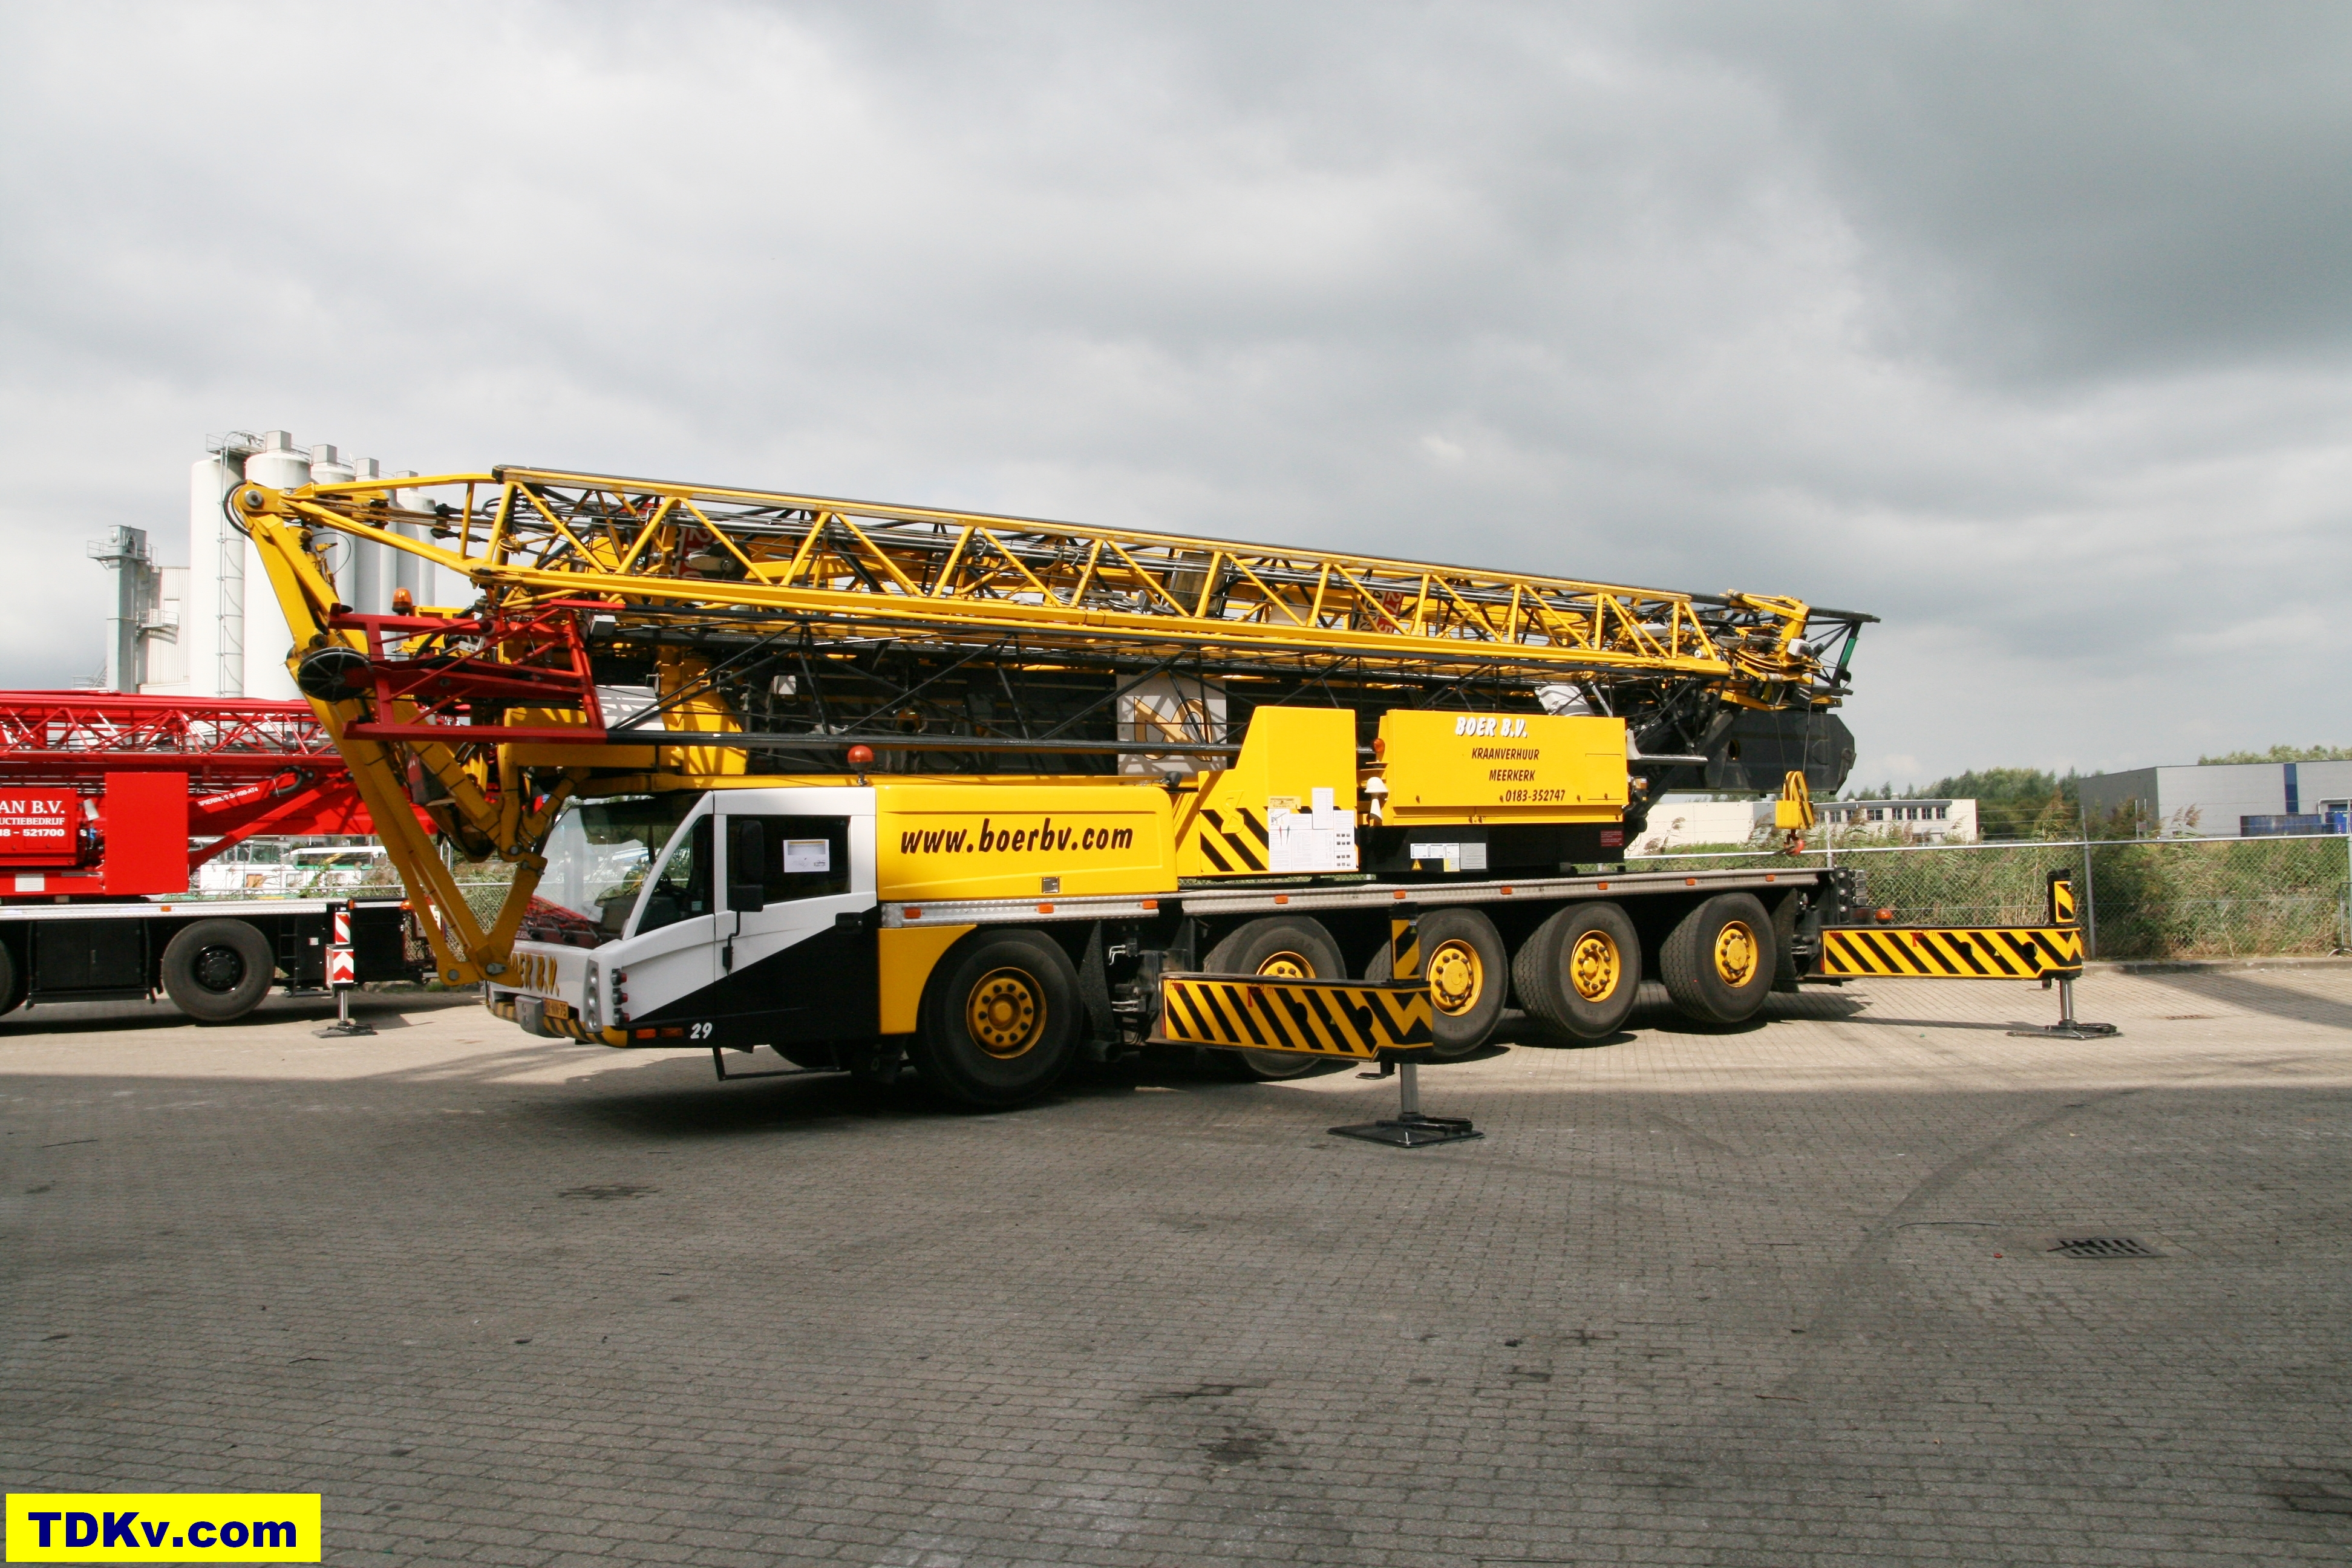 Spierings mobile tower crane SK599-AT5 from Boer BV